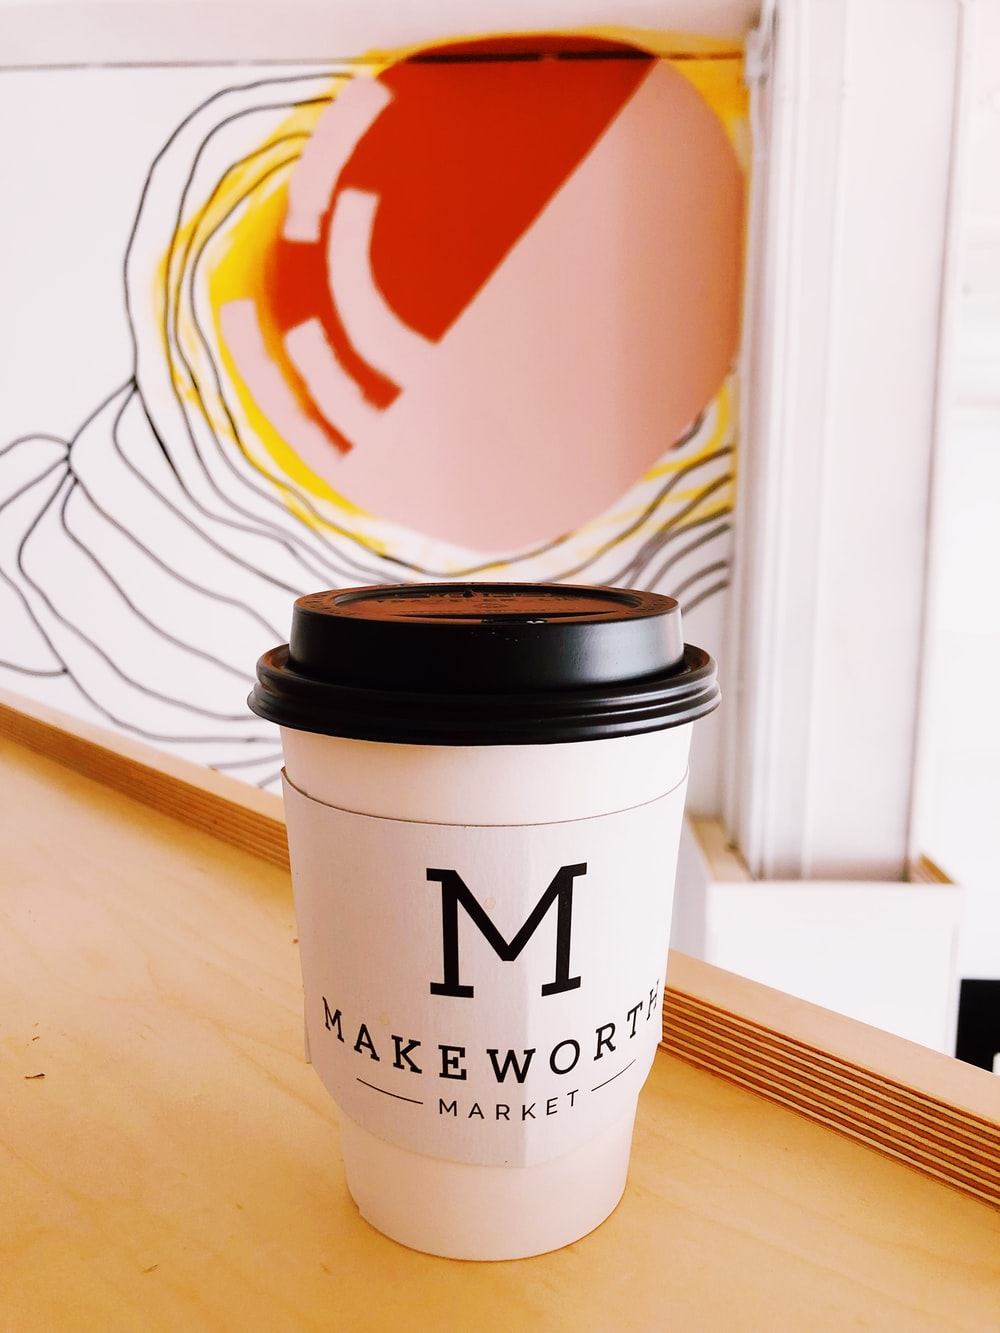 Makeworthy market cup